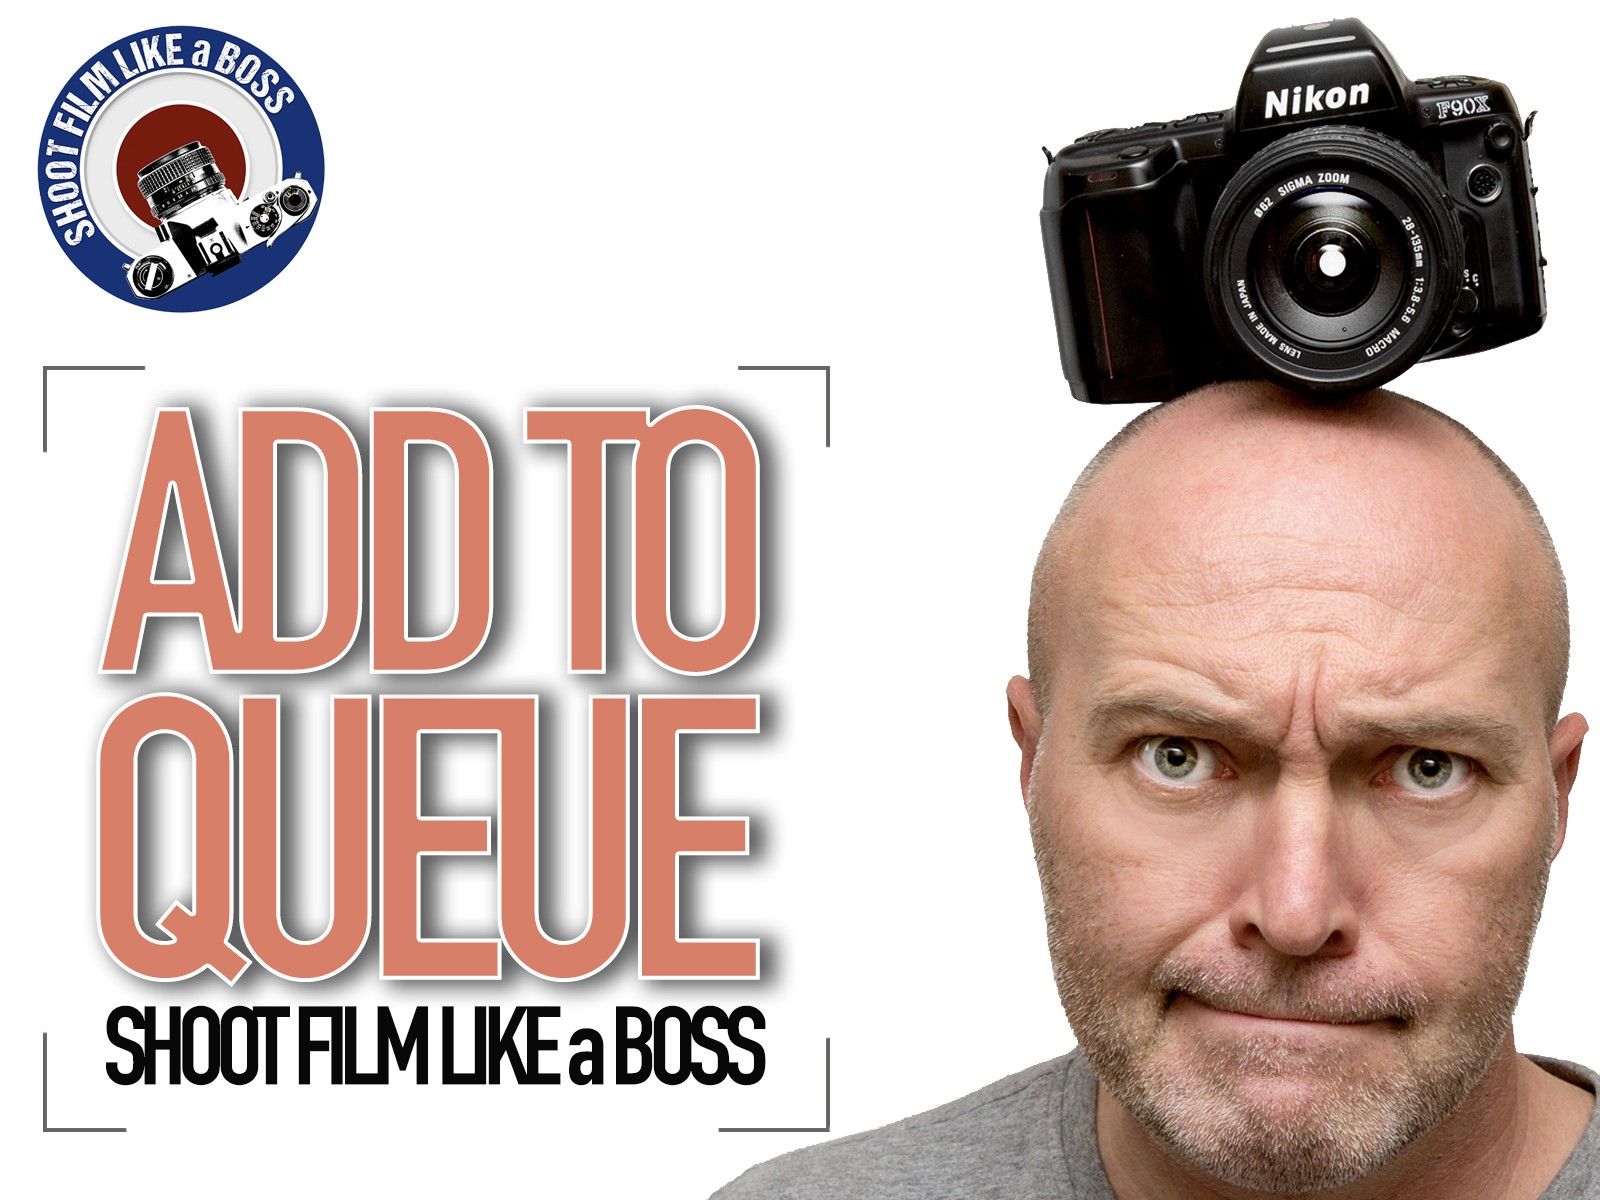 Add to queue: Interviewing Roger Lowe (Shoot film like a Boss)